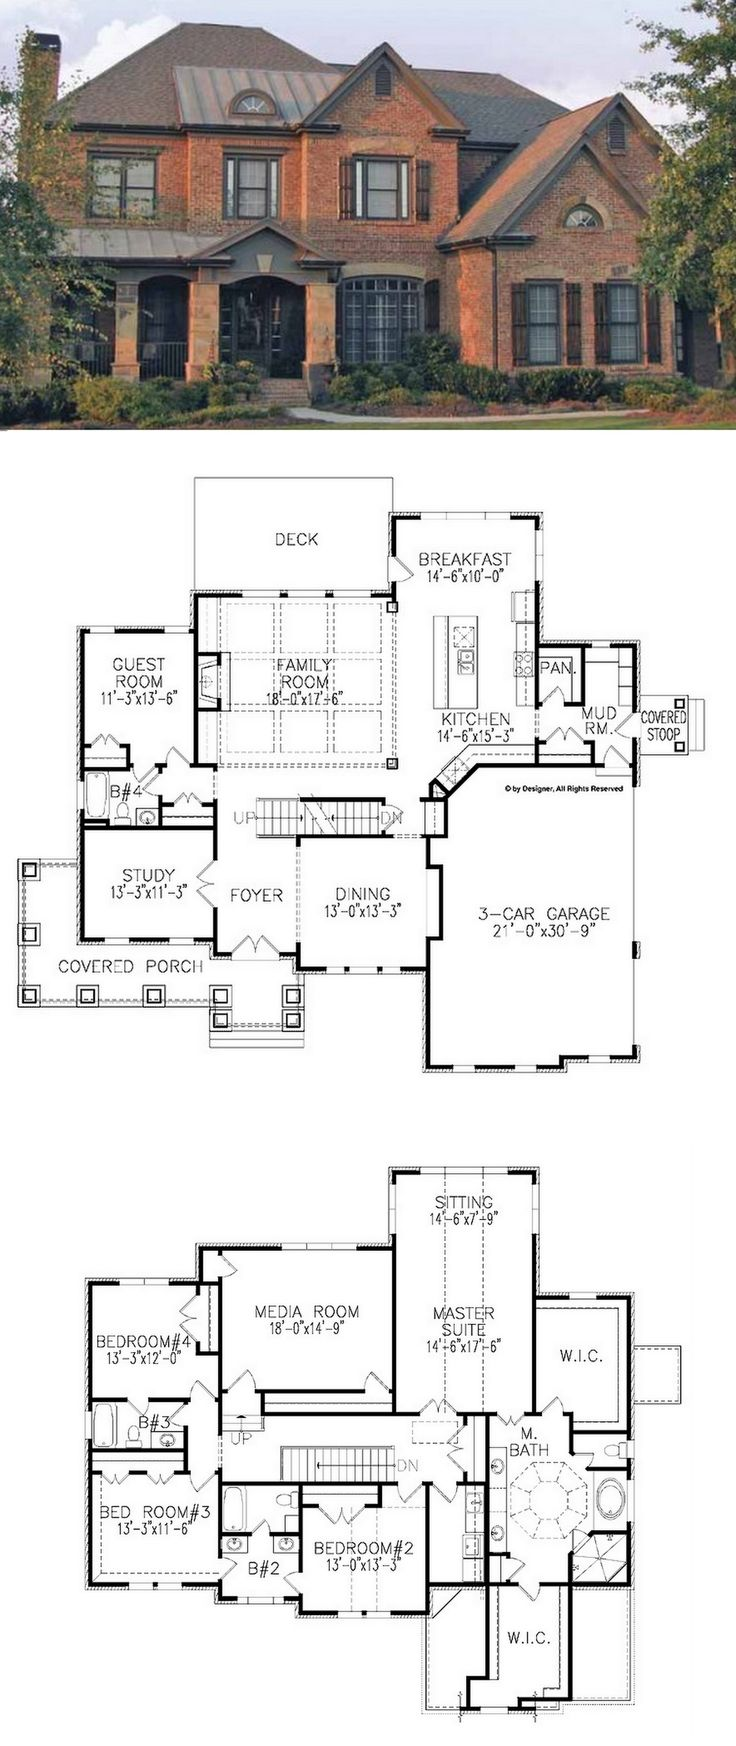 House Planners Design Roomraleigh kitchen cabinets Nice